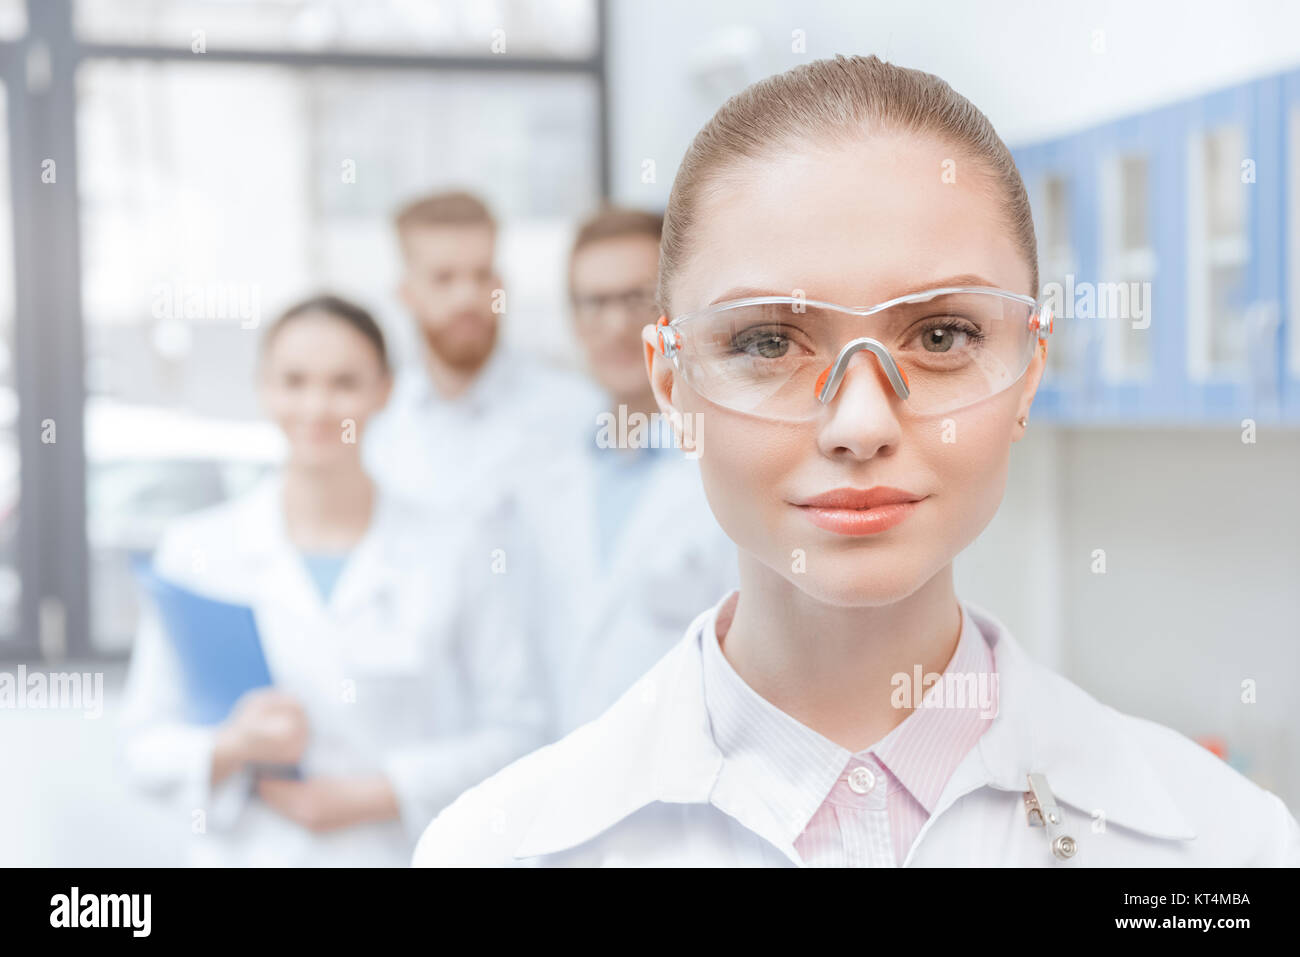 Close-up portrait of young woman scientist in lab coat and protective goggles smiling - Stock Image